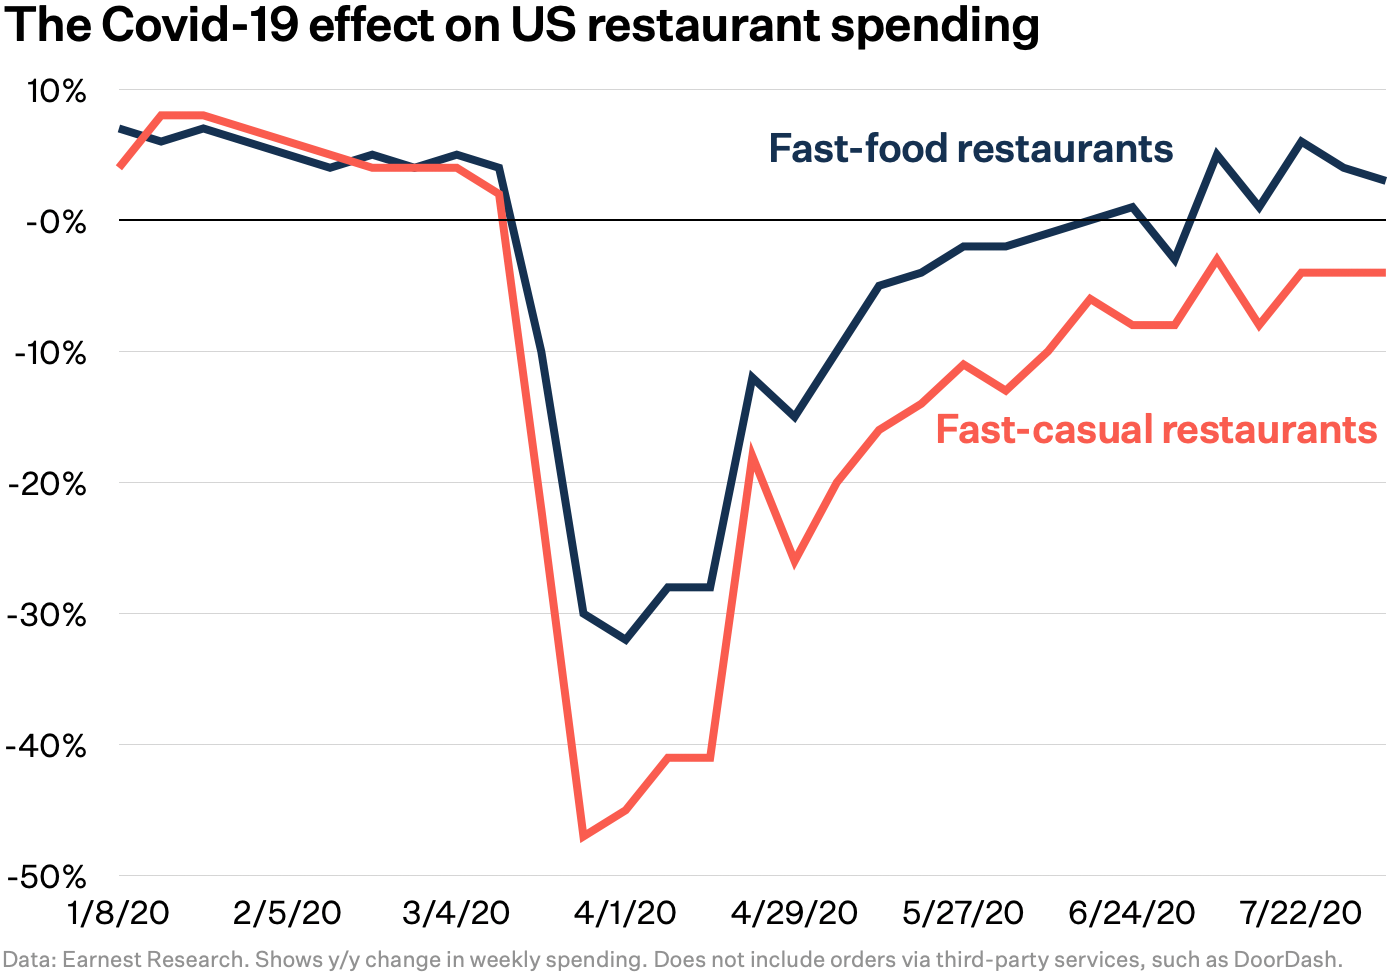 COVID-19 effect on US fast food and fast-casual restaurant spending chart Earnest Research